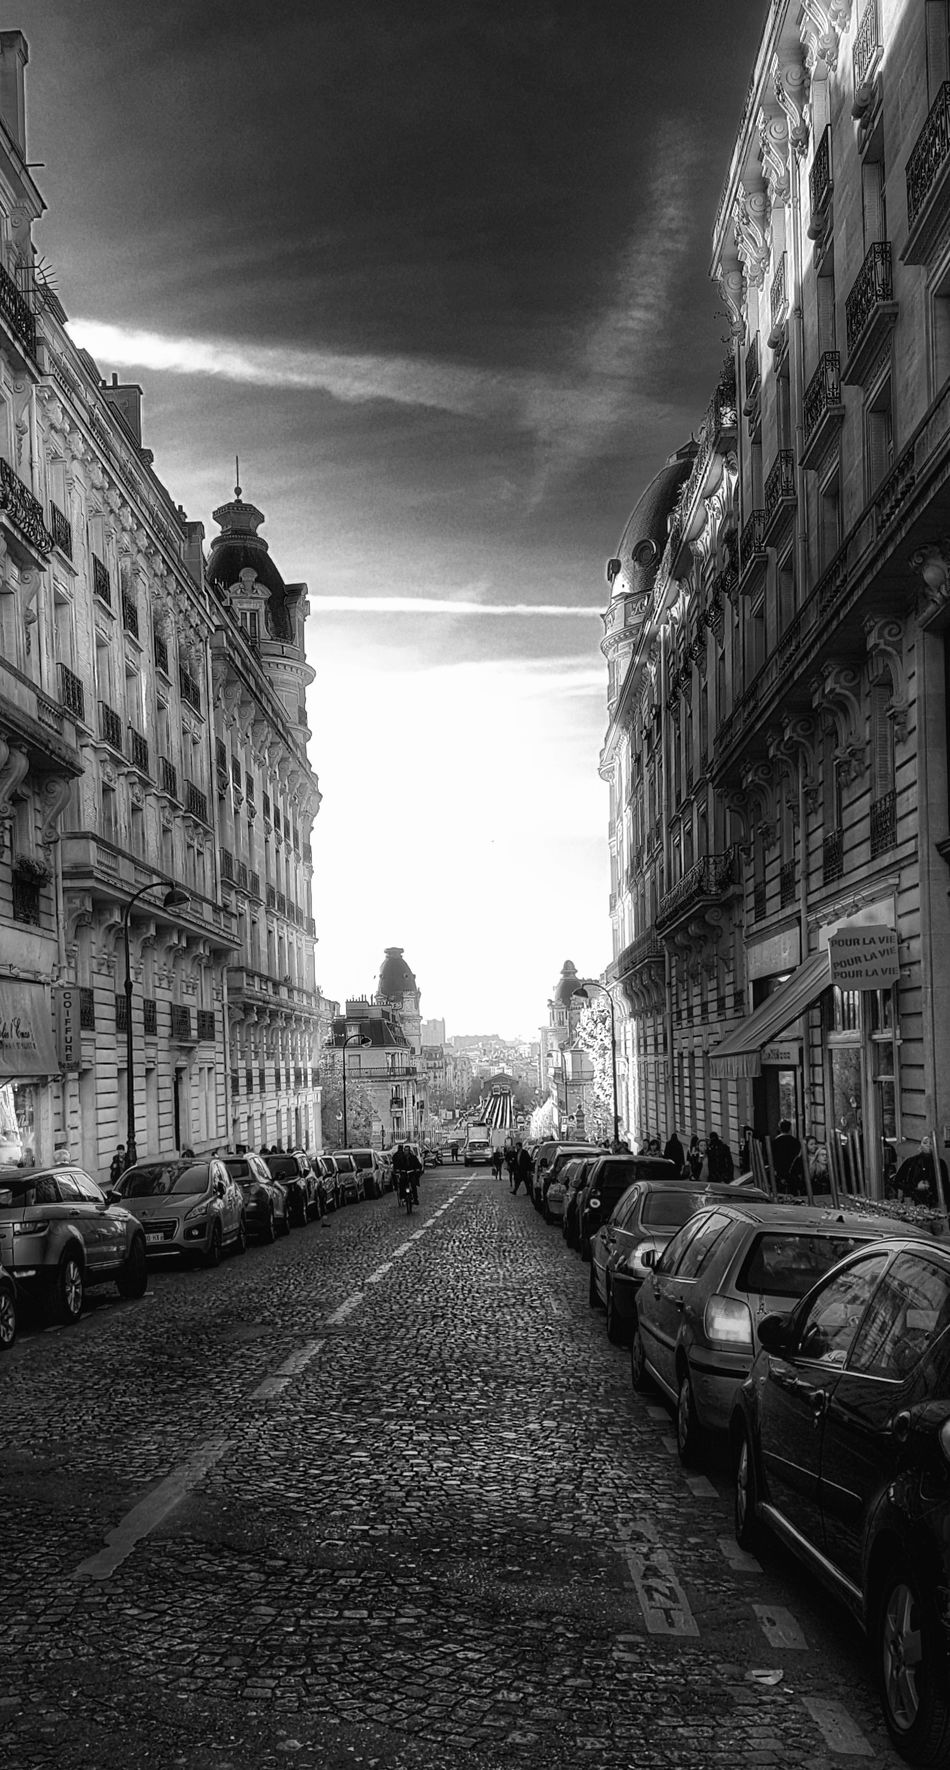 Architecture Built Structure Building Exterior City Capture The Moment Take Photos From My Point Of View Samsung Galaxy S7 Edge Ladyphotographerofthemonth Blackandwhite Photography Black And White Photography Cityscape Blackandwhite City Landscape Black And White Street People Paris ❤ Black And White Collection  Street Photography Streetphoto_bw City Life City Street